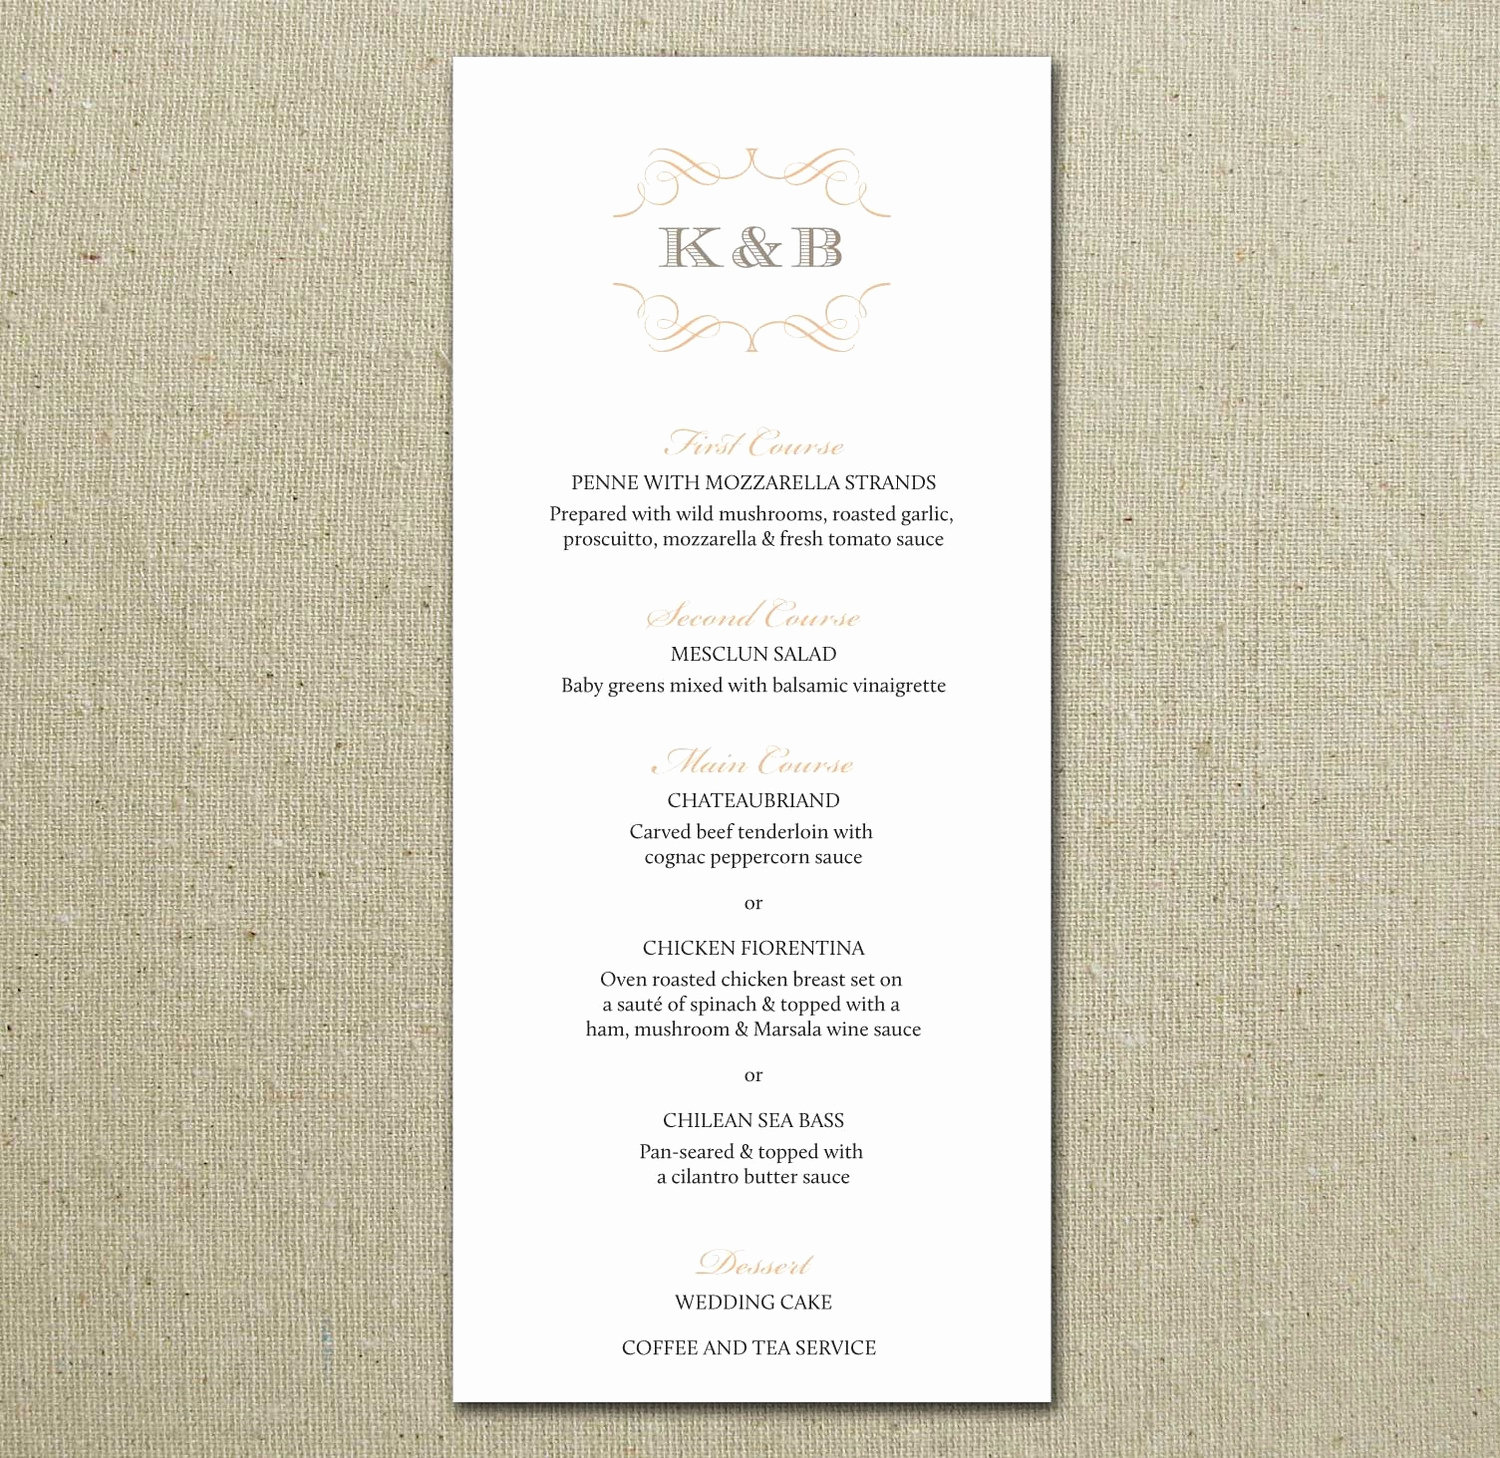 Jewish Wedding Invitation Etiquette Inspirational Invitations Ideas Affordable Jewish Wedding Invitation